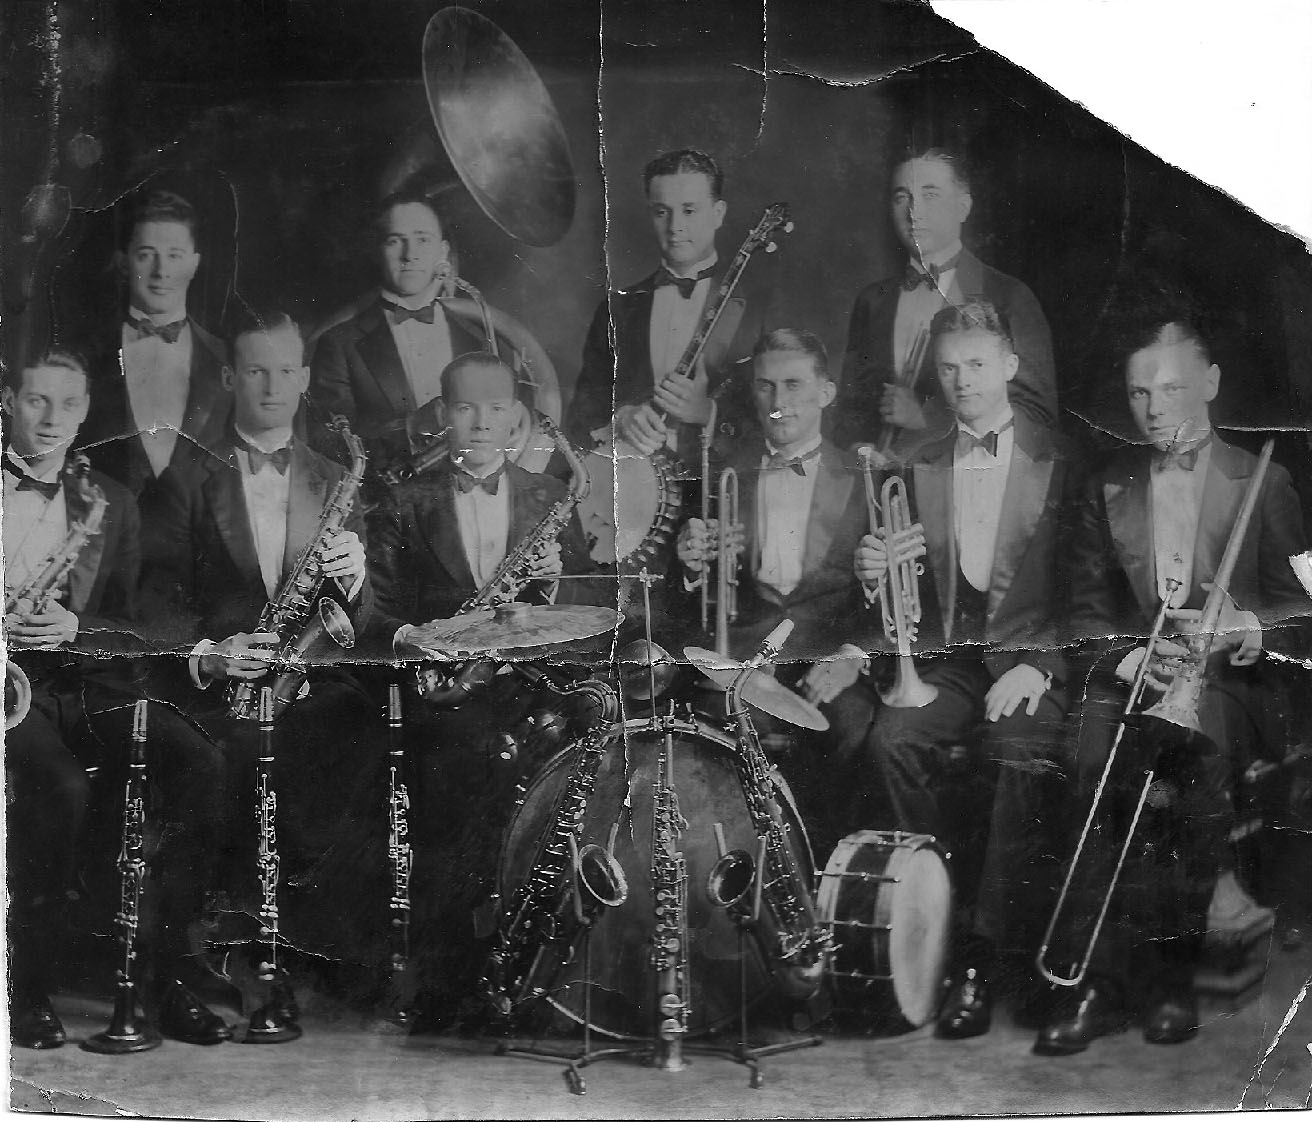 1920s-band